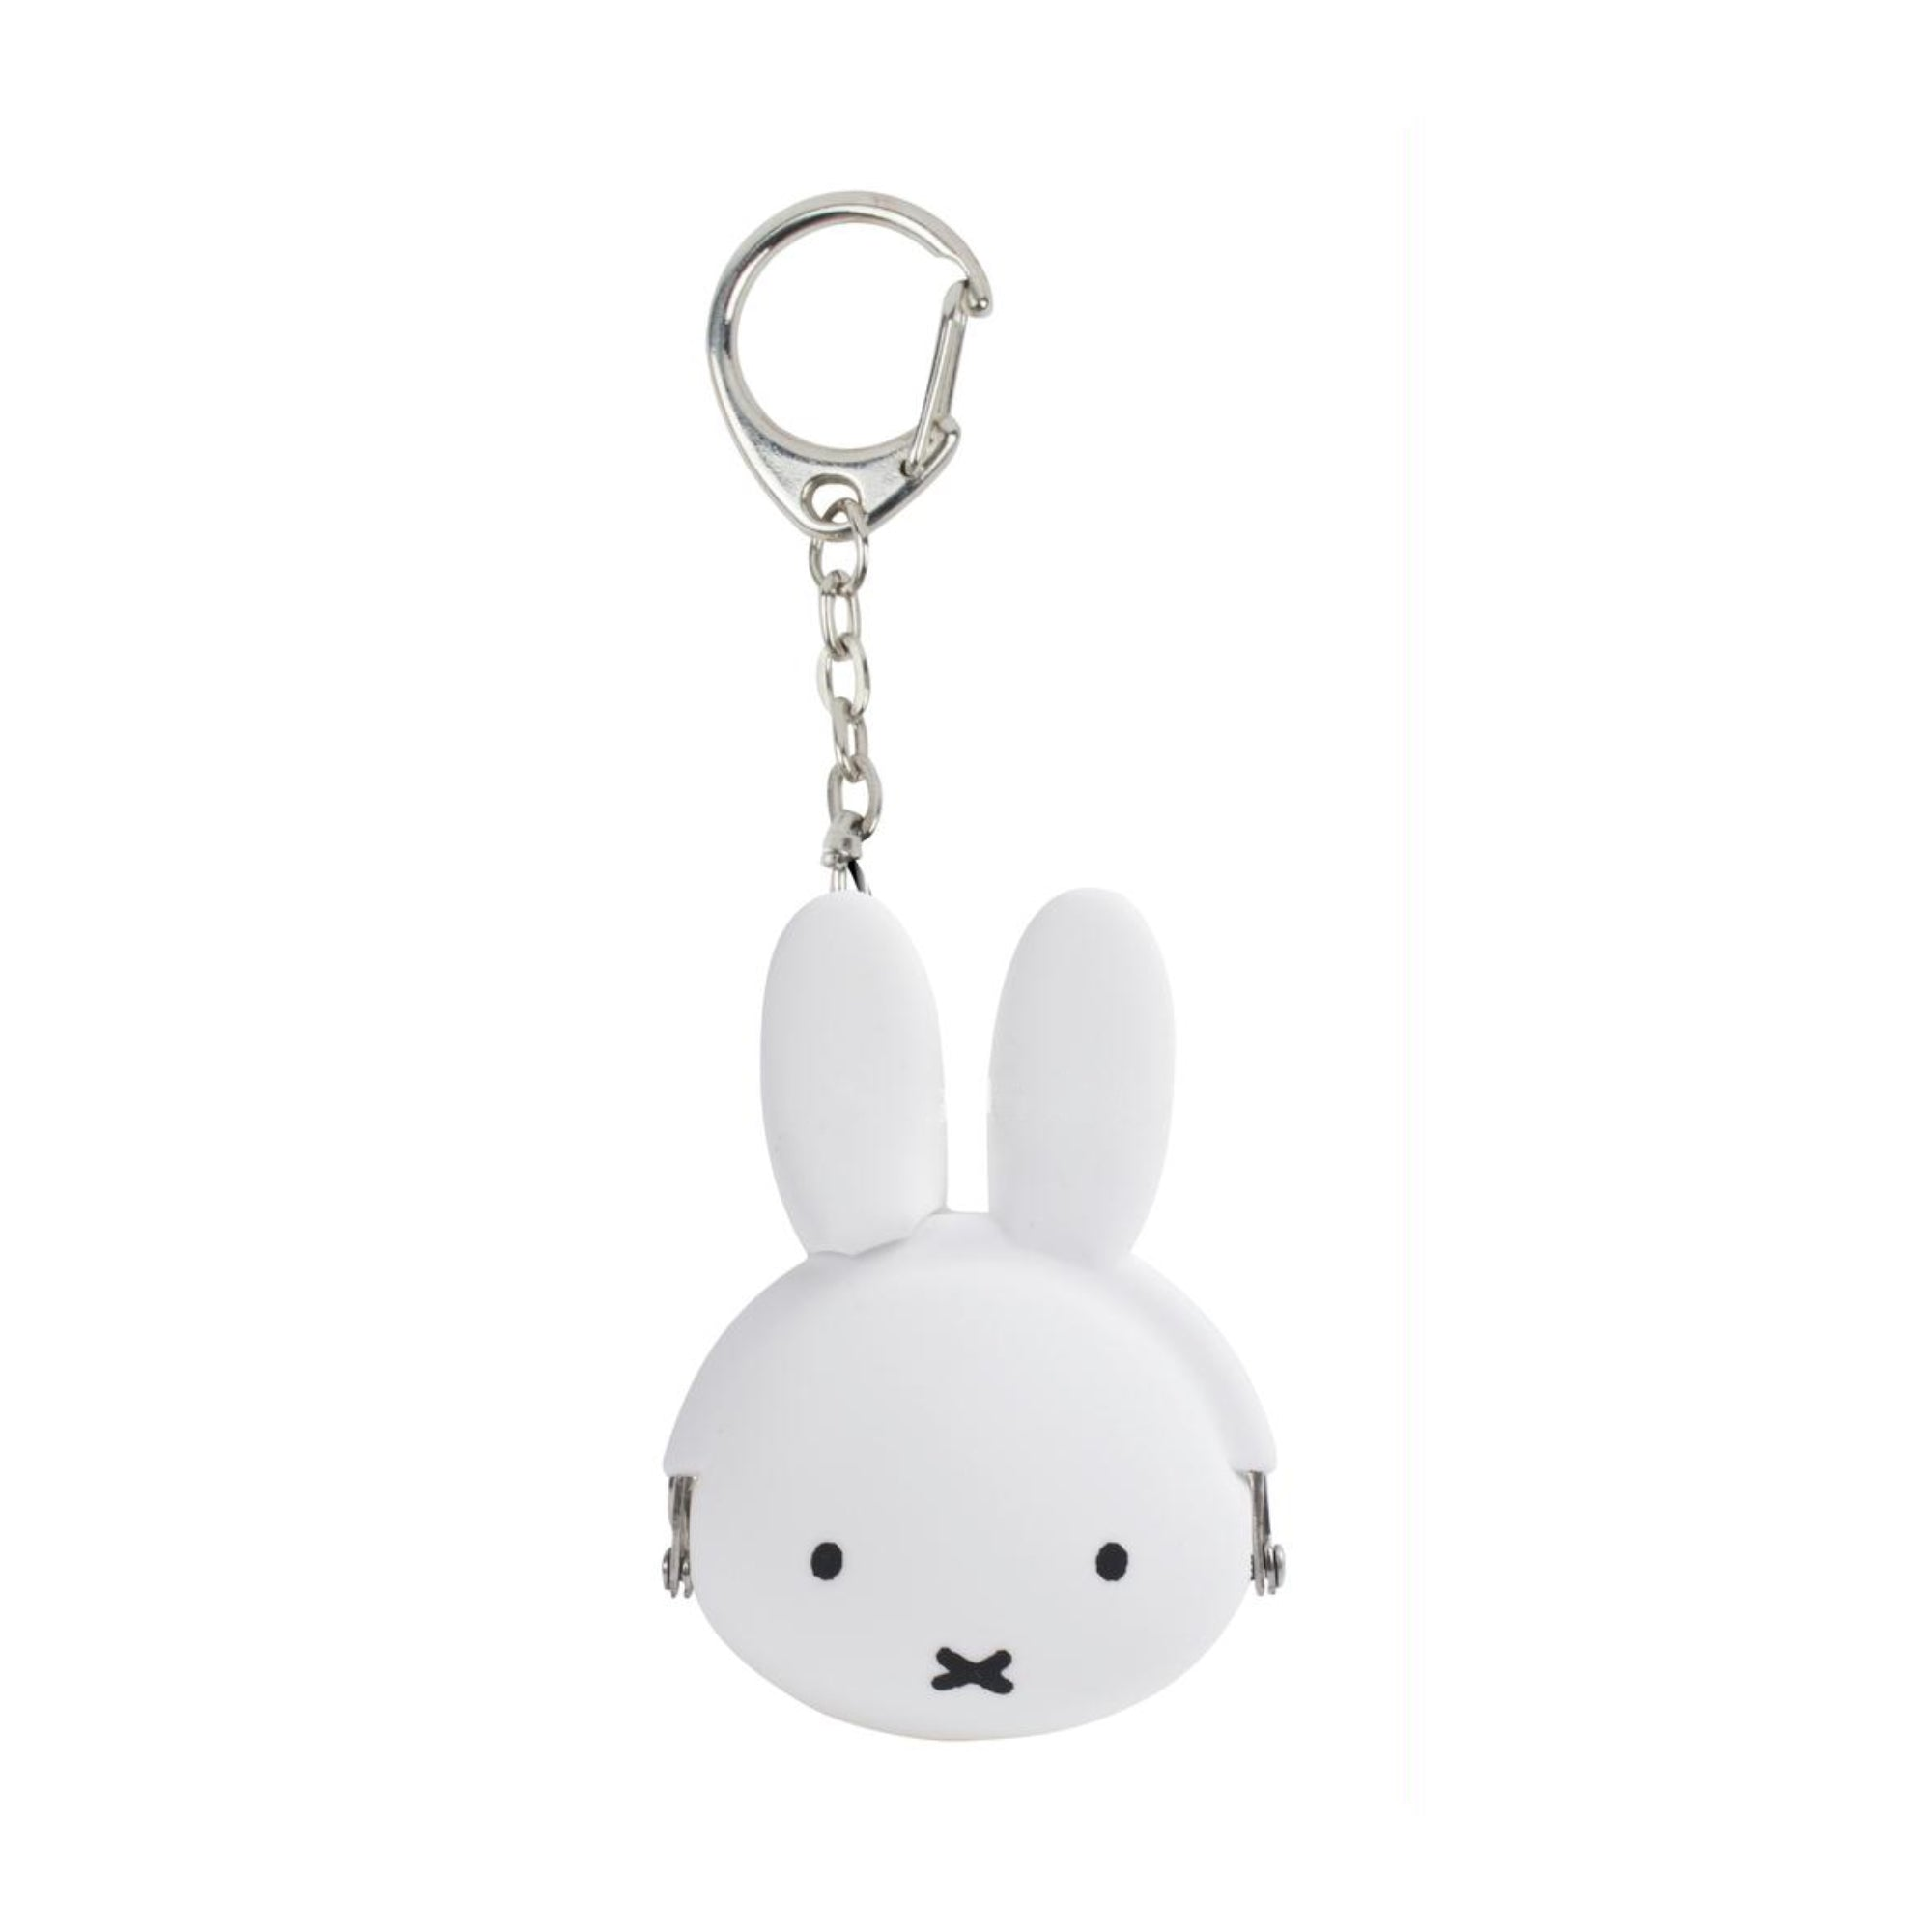 Pochibi Miffy Mimi Pochi Baby key case, white